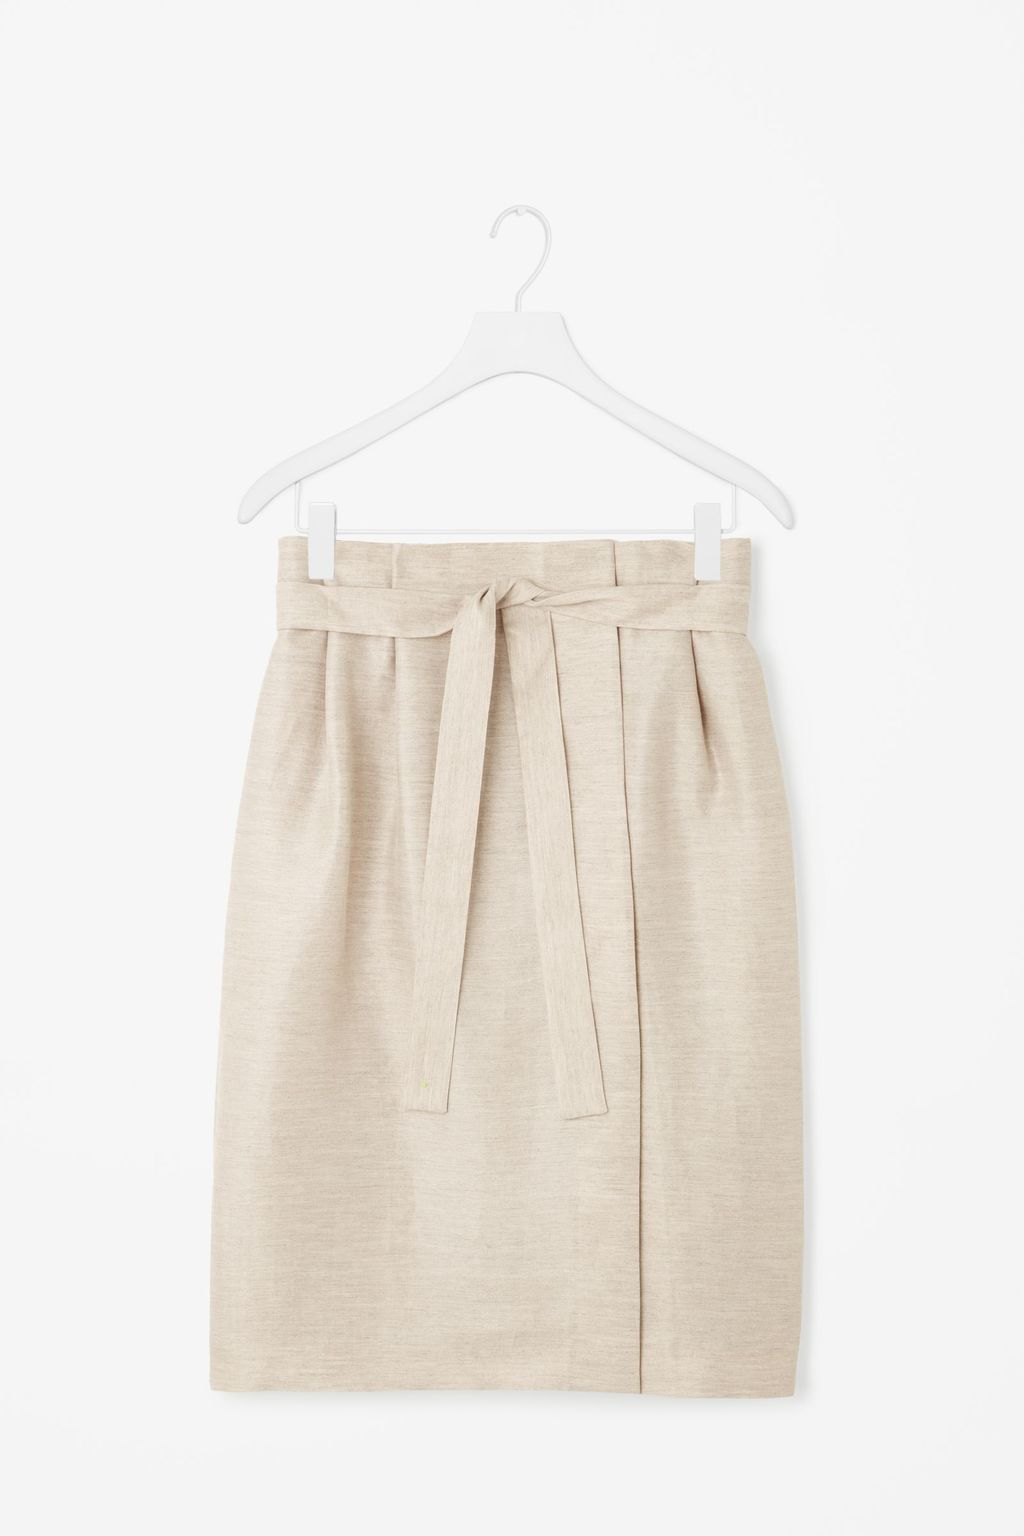 Wrap Front Linen Skirt - pattern: plain; style: wrap/faux wrap; waist: high rise; waist detail: belted waist/tie at waist/drawstring; predominant colour: ivory/cream; occasions: casual, creative work; length: just above the knee; fibres: linen - 100%; texture group: linen; fit: straight cut; pattern type: fabric; season: s/s 2016